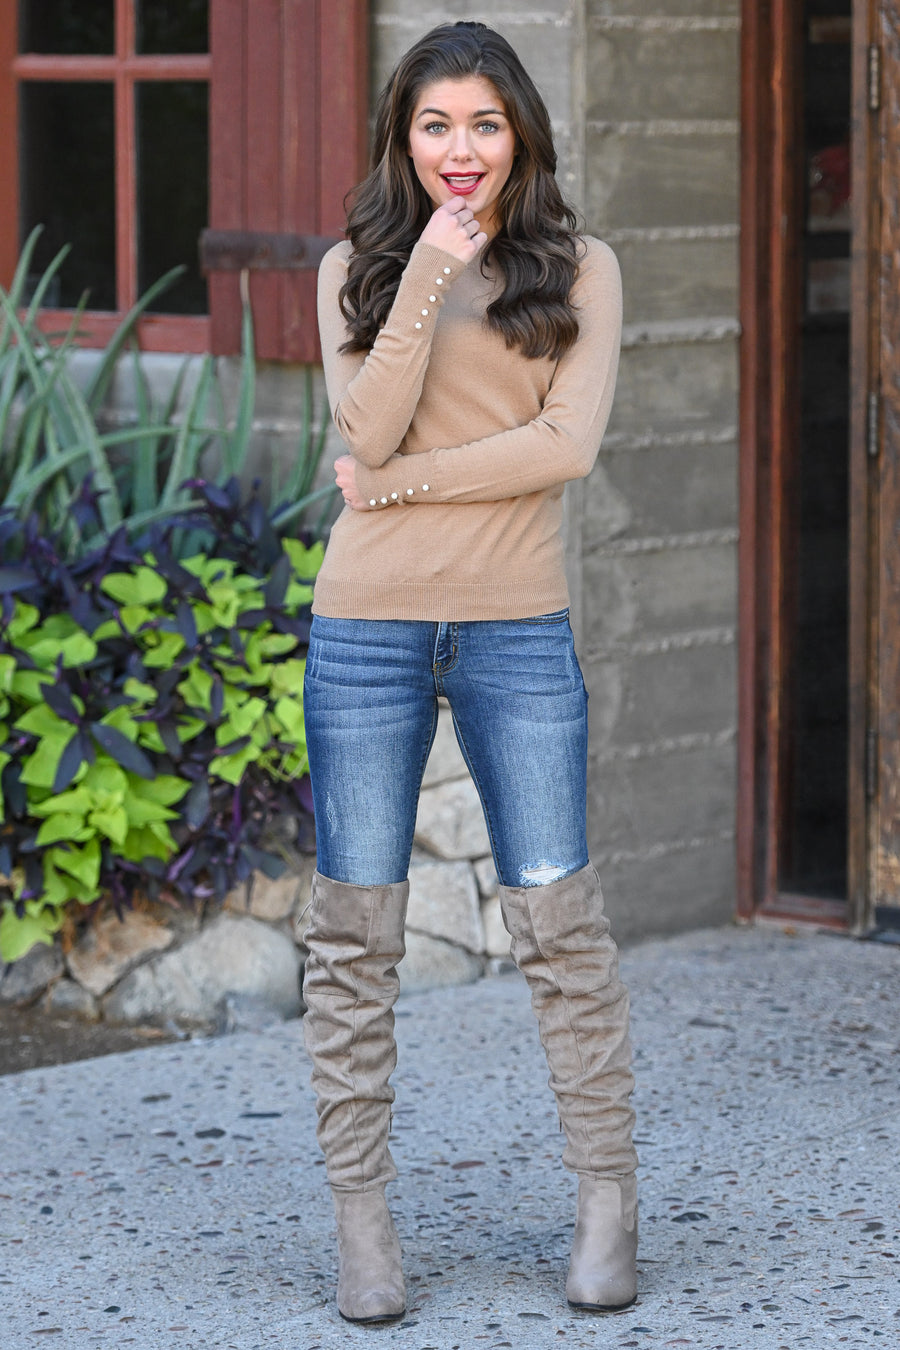 She's Got Class Knit Top - Camel women's top with pearl details at sleeve, Closet Candy Boutique 1